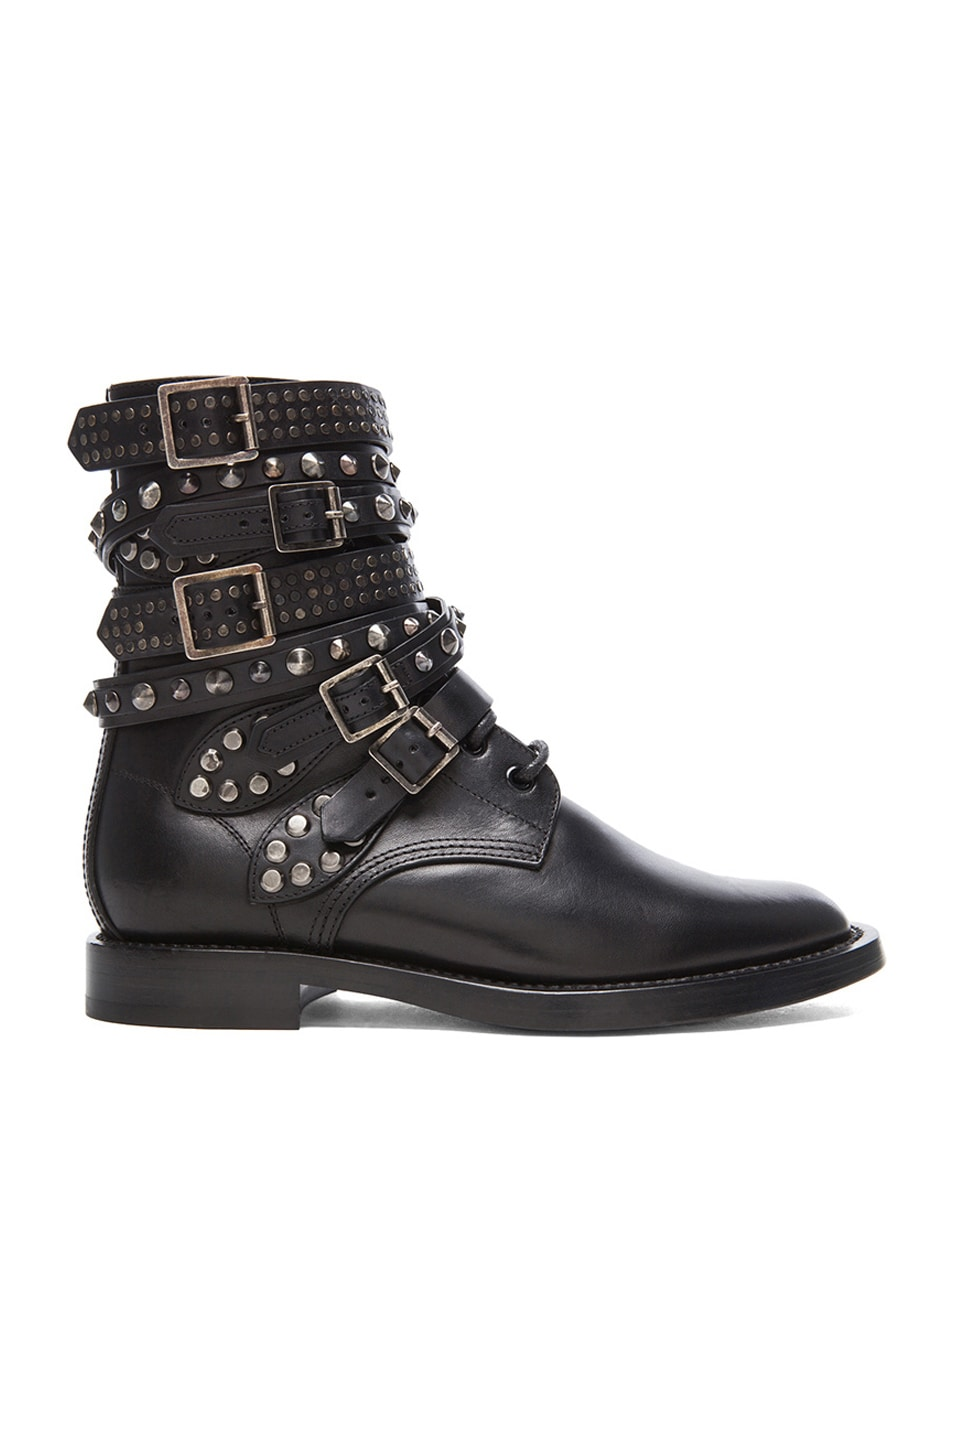 Image 1 of Saint Laurent Rangers Studded Leather Combat Boots in Black